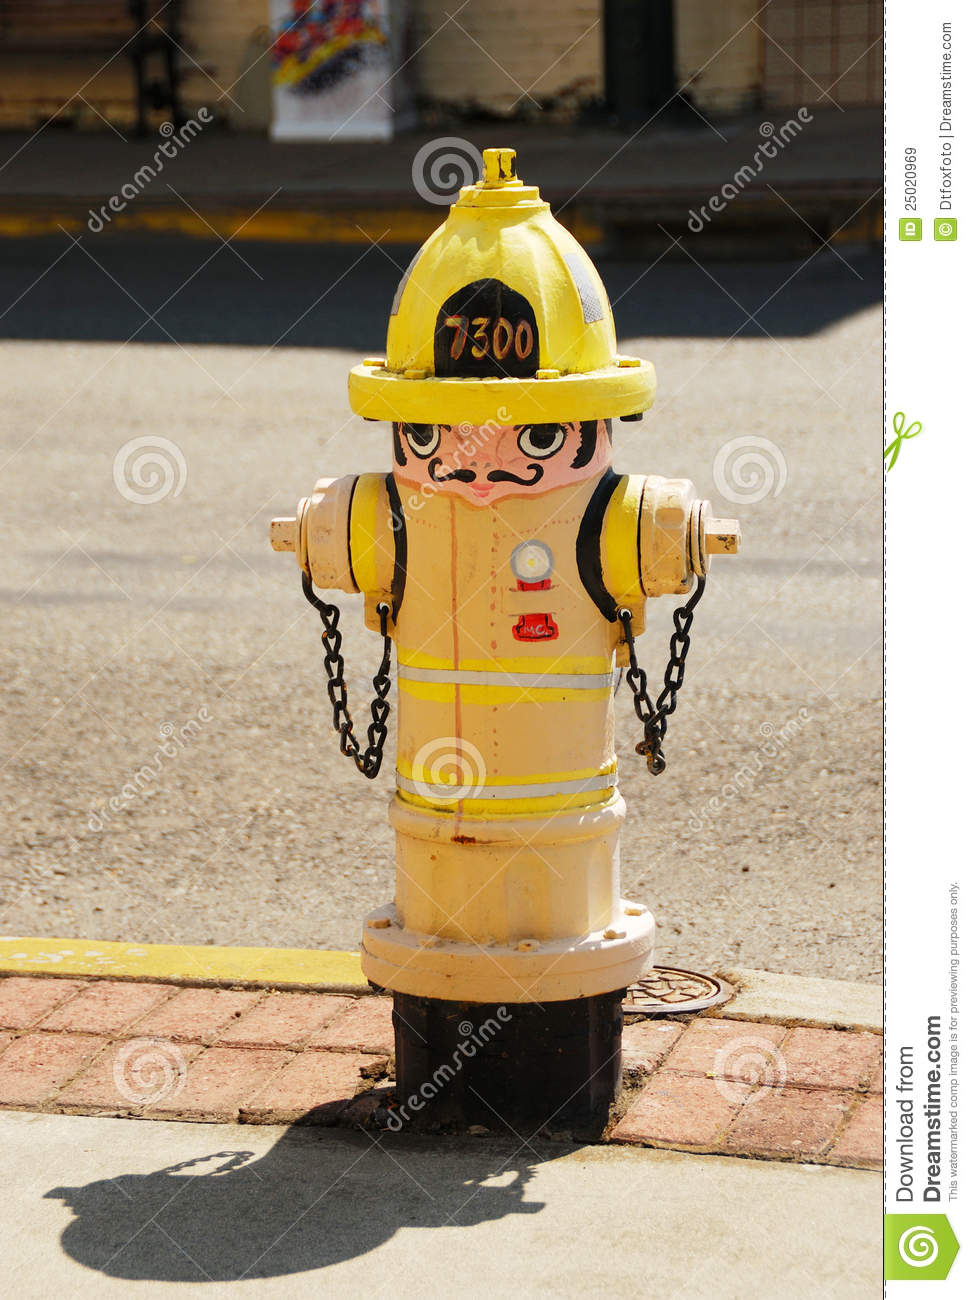 Fire Hydrant Royalty Free Stock Images Image 25020969